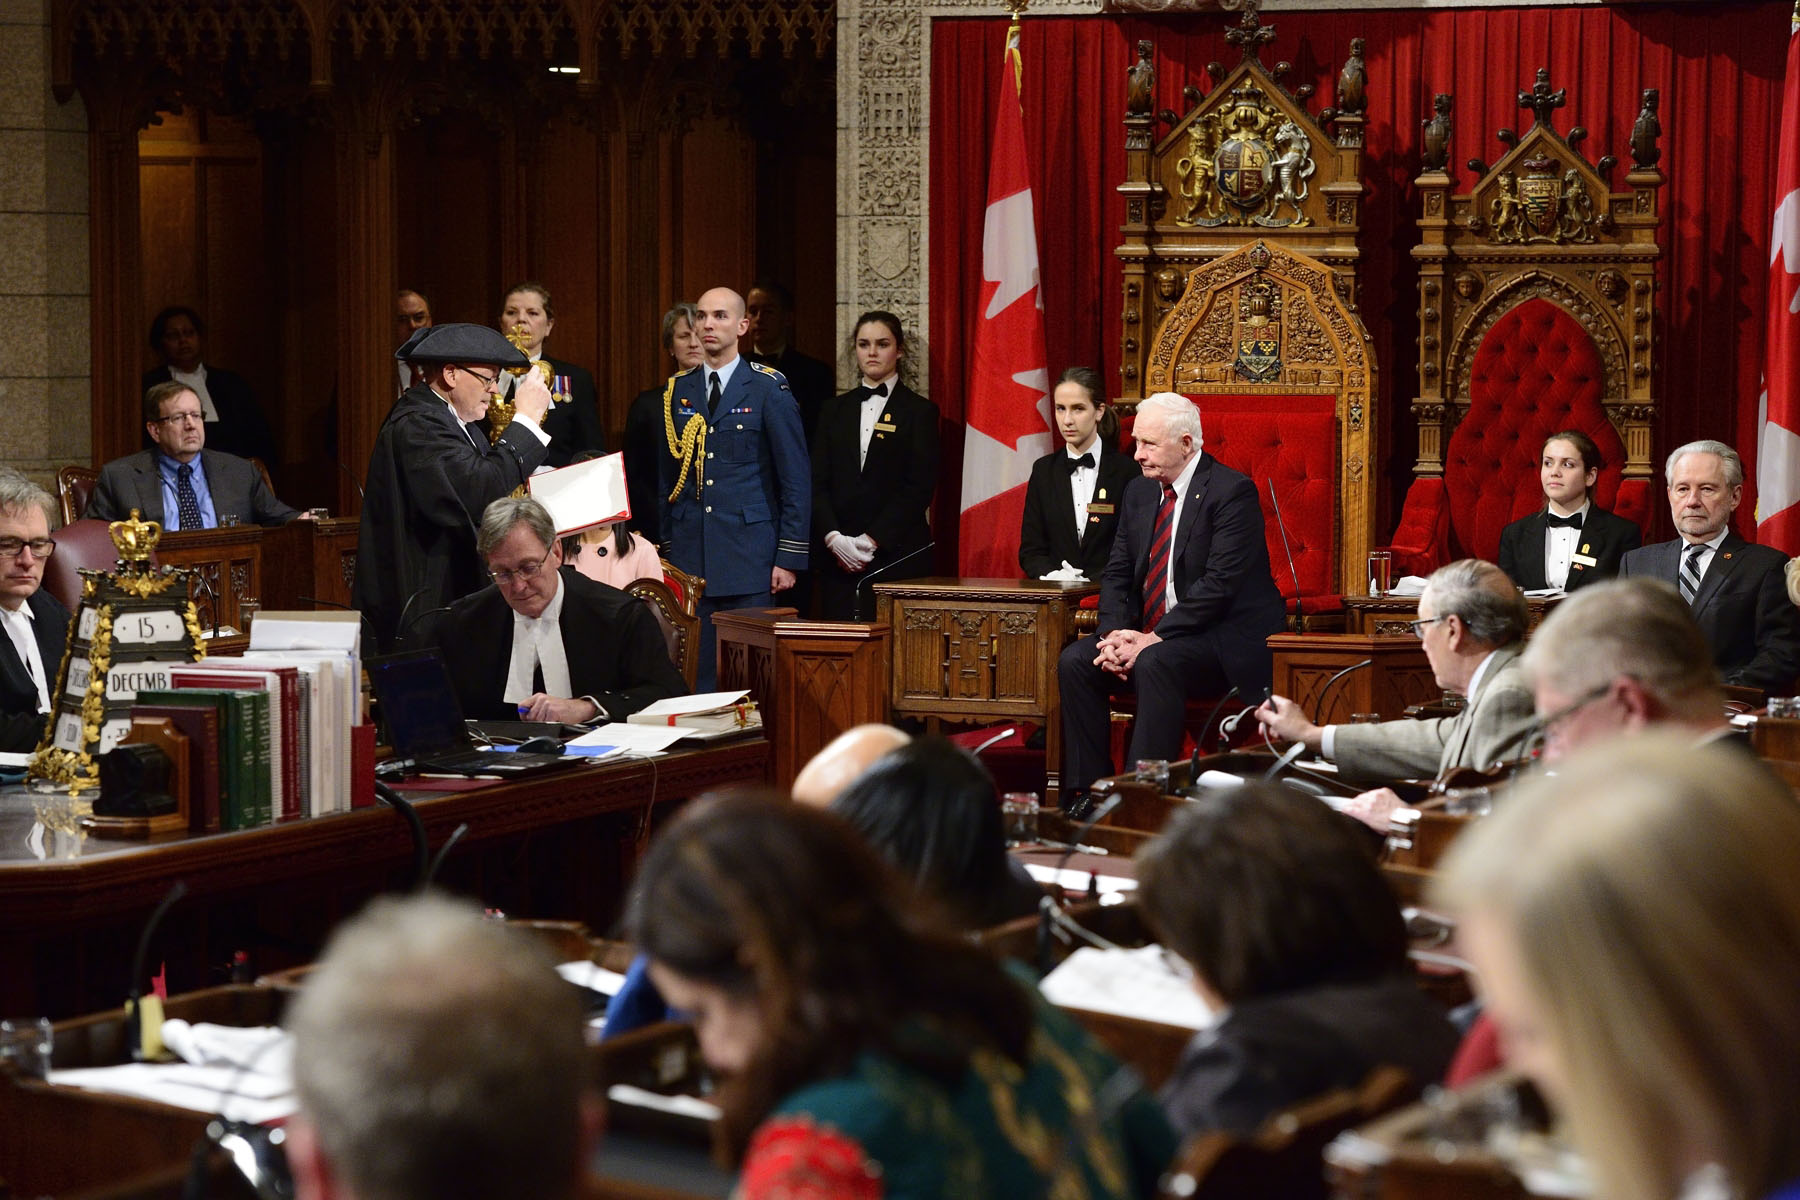 On December 15, 2016, Governor General David Johnston granted Royal Assent during a formal ceremony in the Senate Chamber.